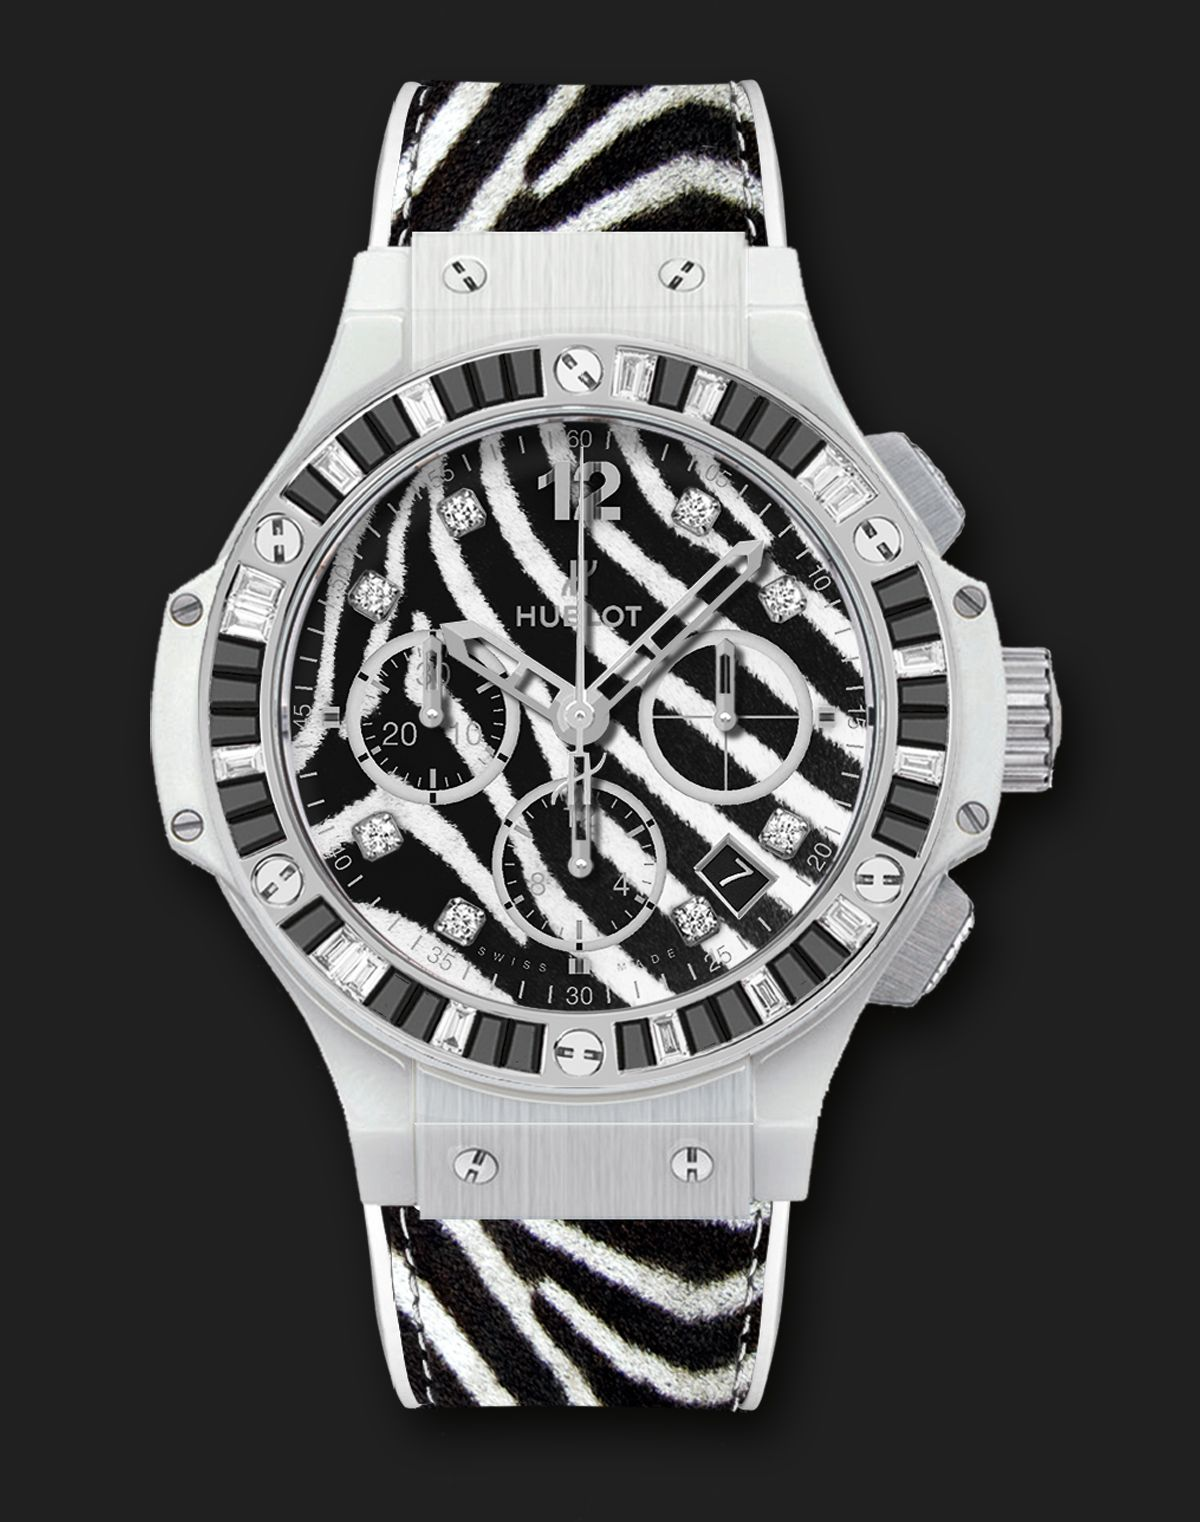 White Zebra Bang #Hublot #Watches